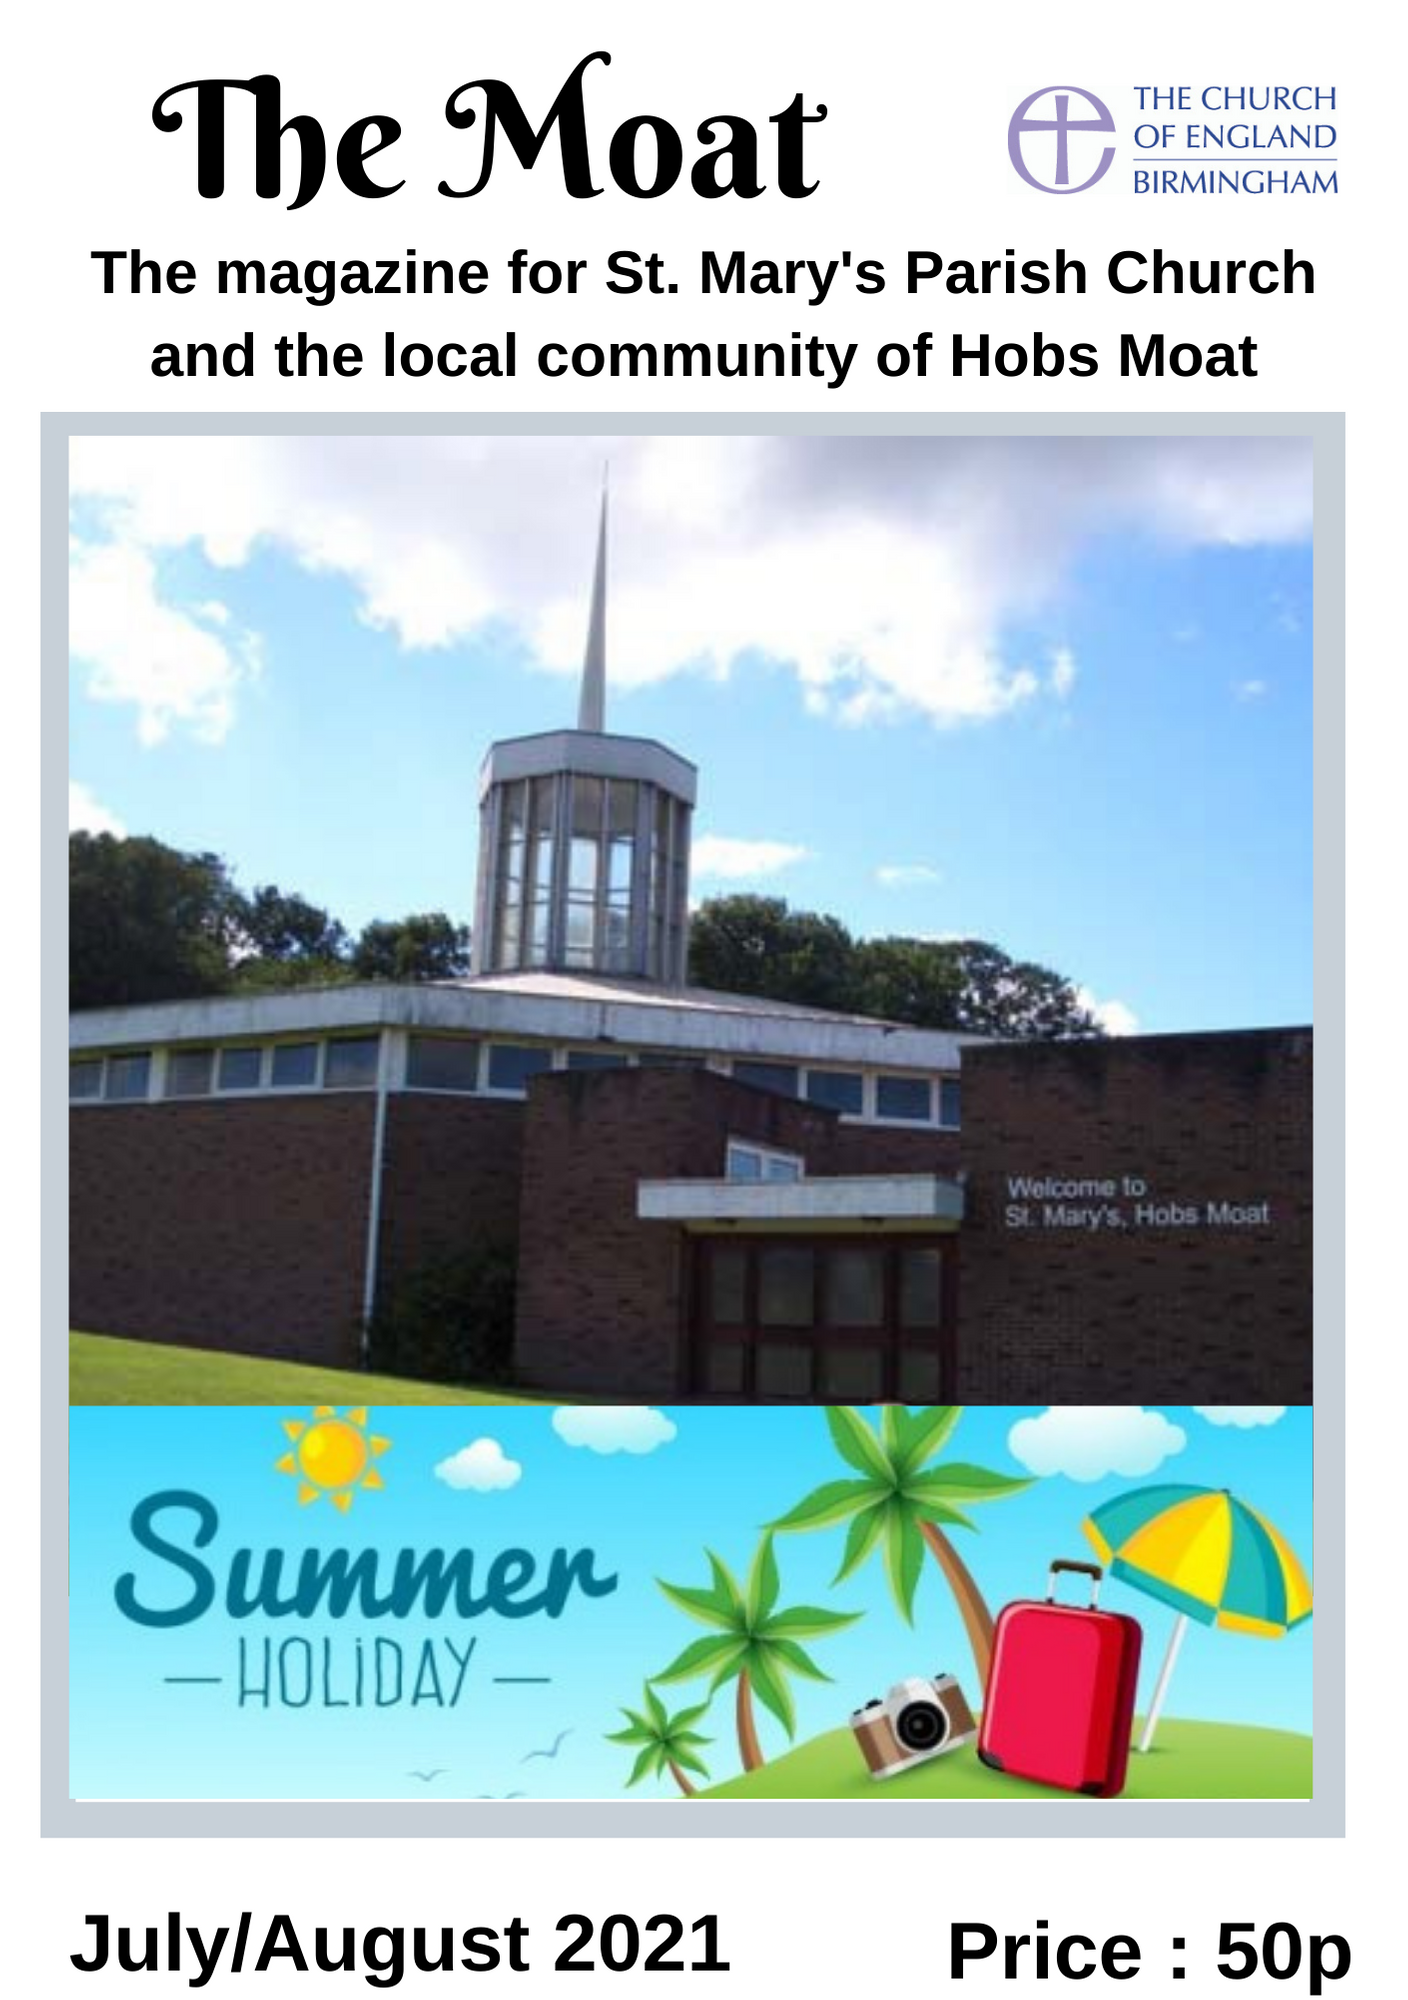 The Moat Magazine - July/August 2021